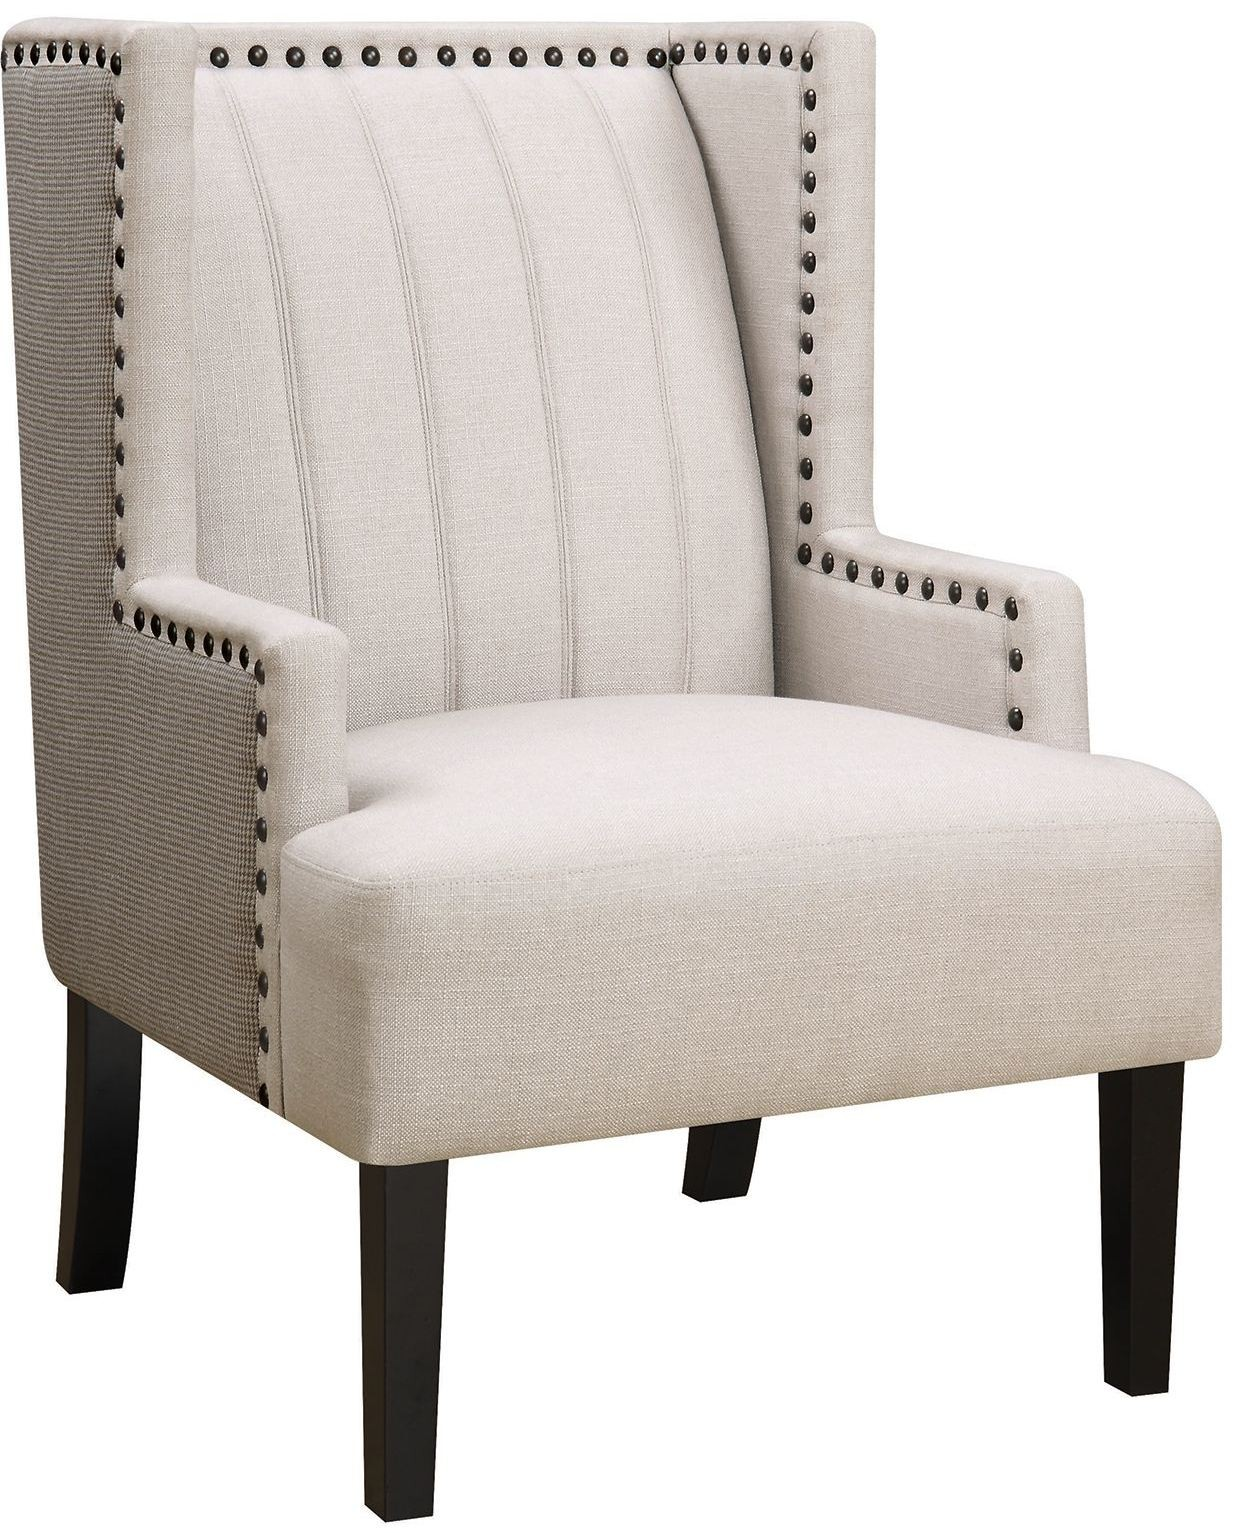 madeleine side chair review circle futon ii light beige by donny osmond from